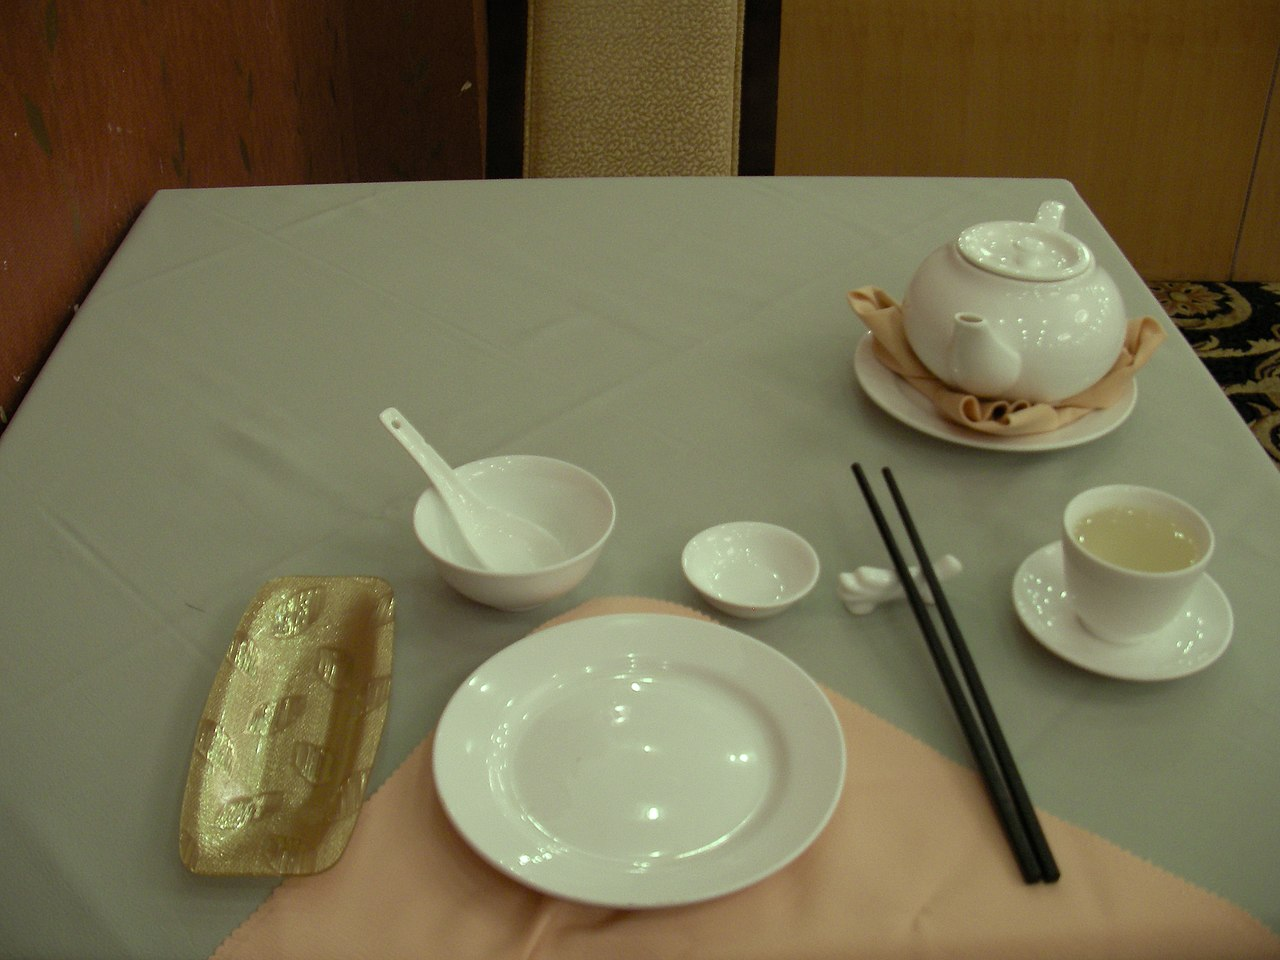 File:Place setting at a table in China.jpg - Wikimedia Commons